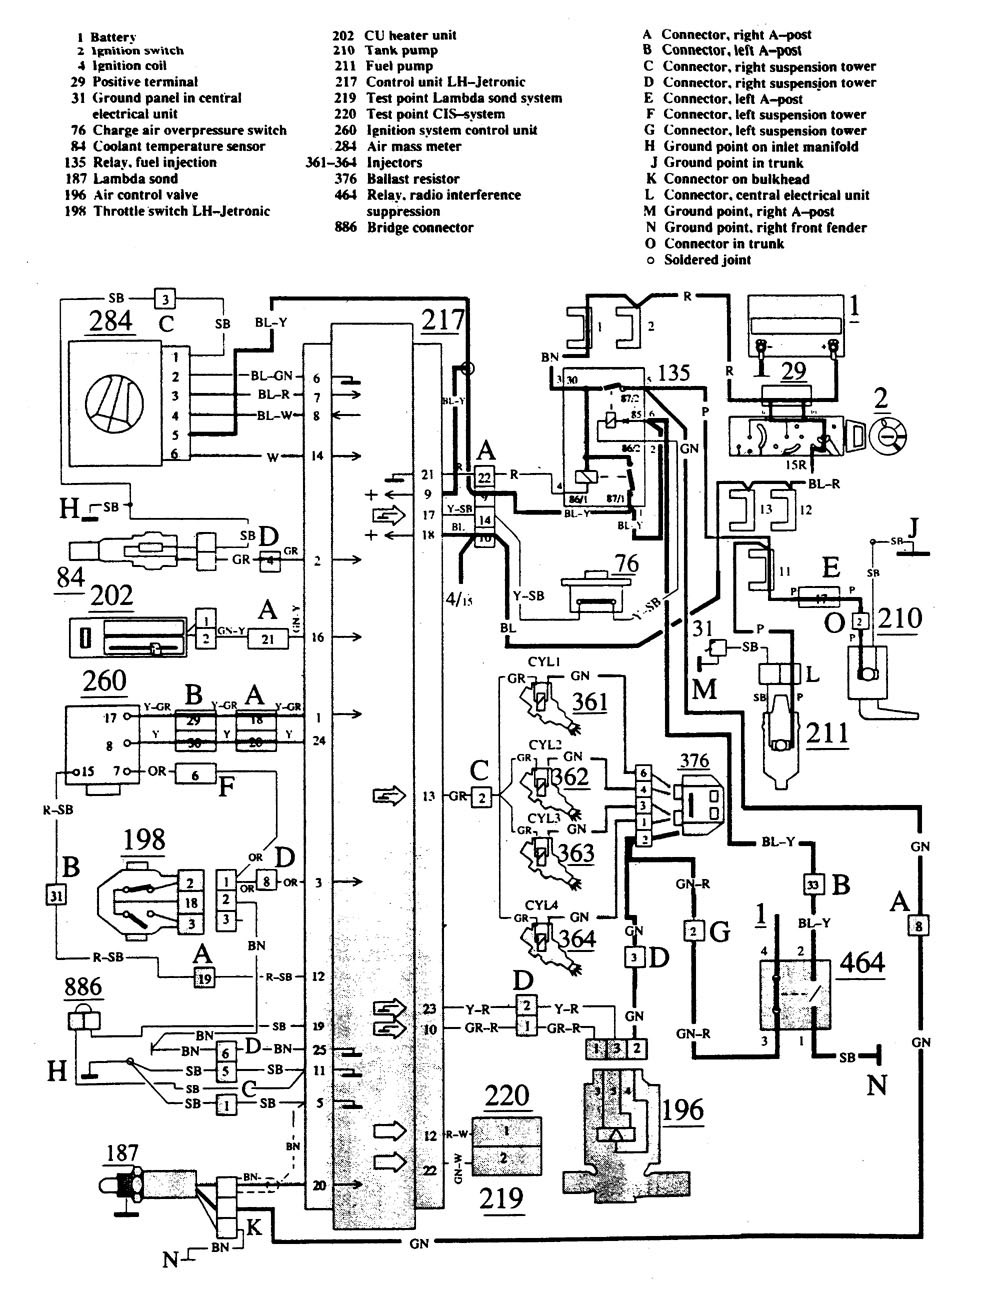 1988 Volvo 740 Radio Wiring Diagram : Volvo tail light wiring peavey exp guitar